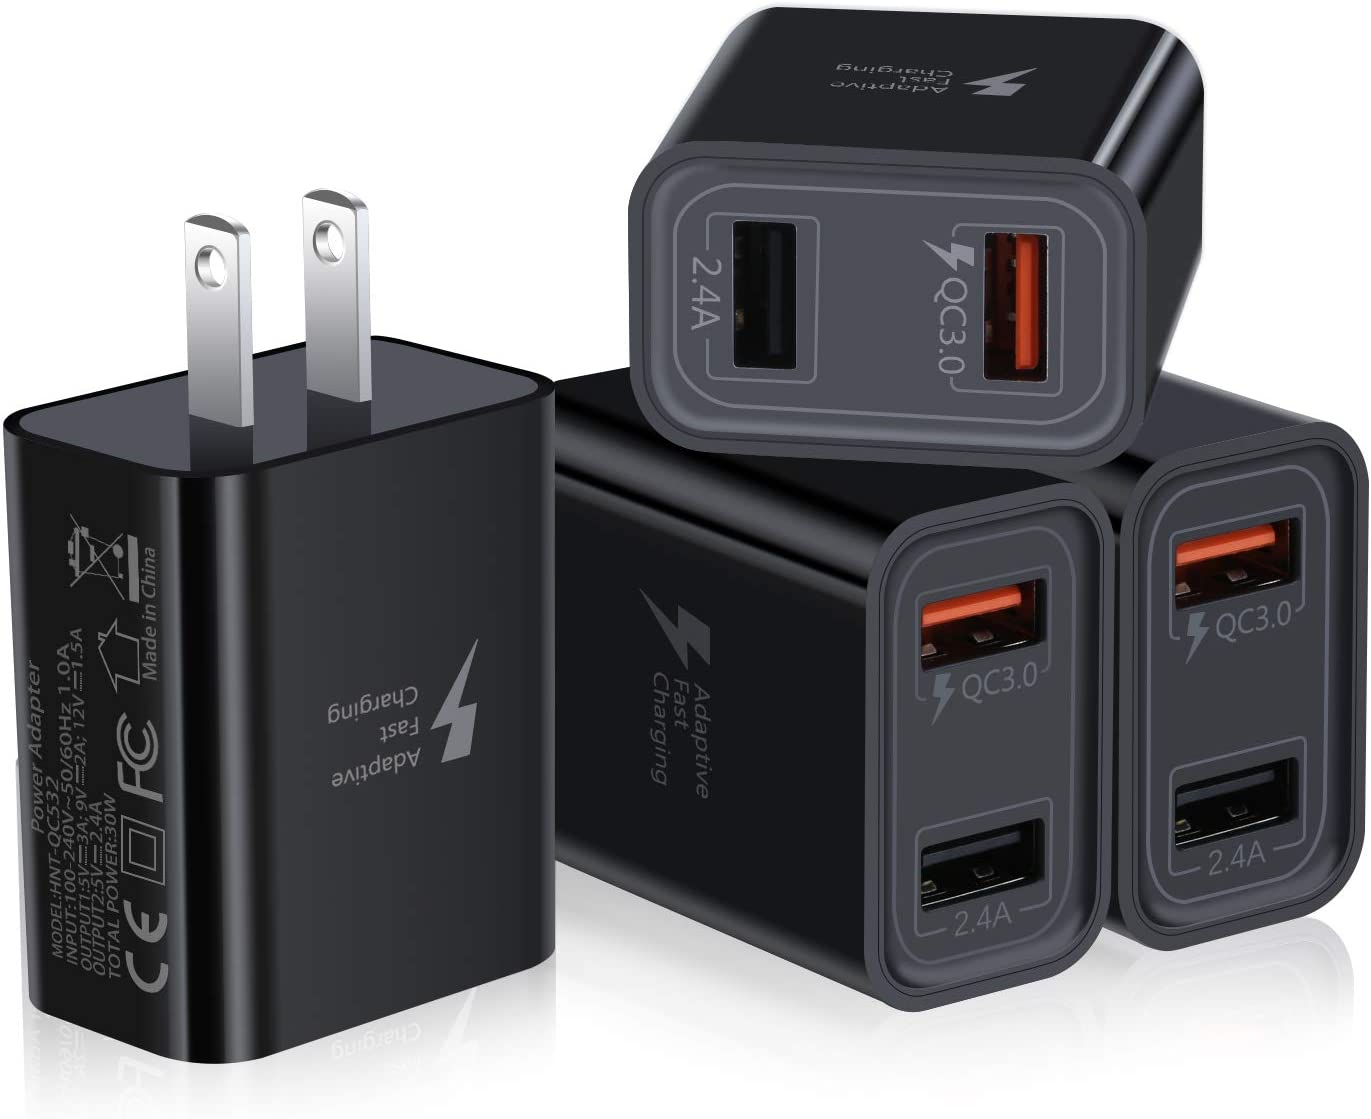 Fast Charge 3.0 USB Charger, Pofesun 4Pack 30W QC 3.0 USB Wall Charger Adapter Adaptive Fast Charging Block Compatible Samsung Galaxy S10 S9 S8 Plus